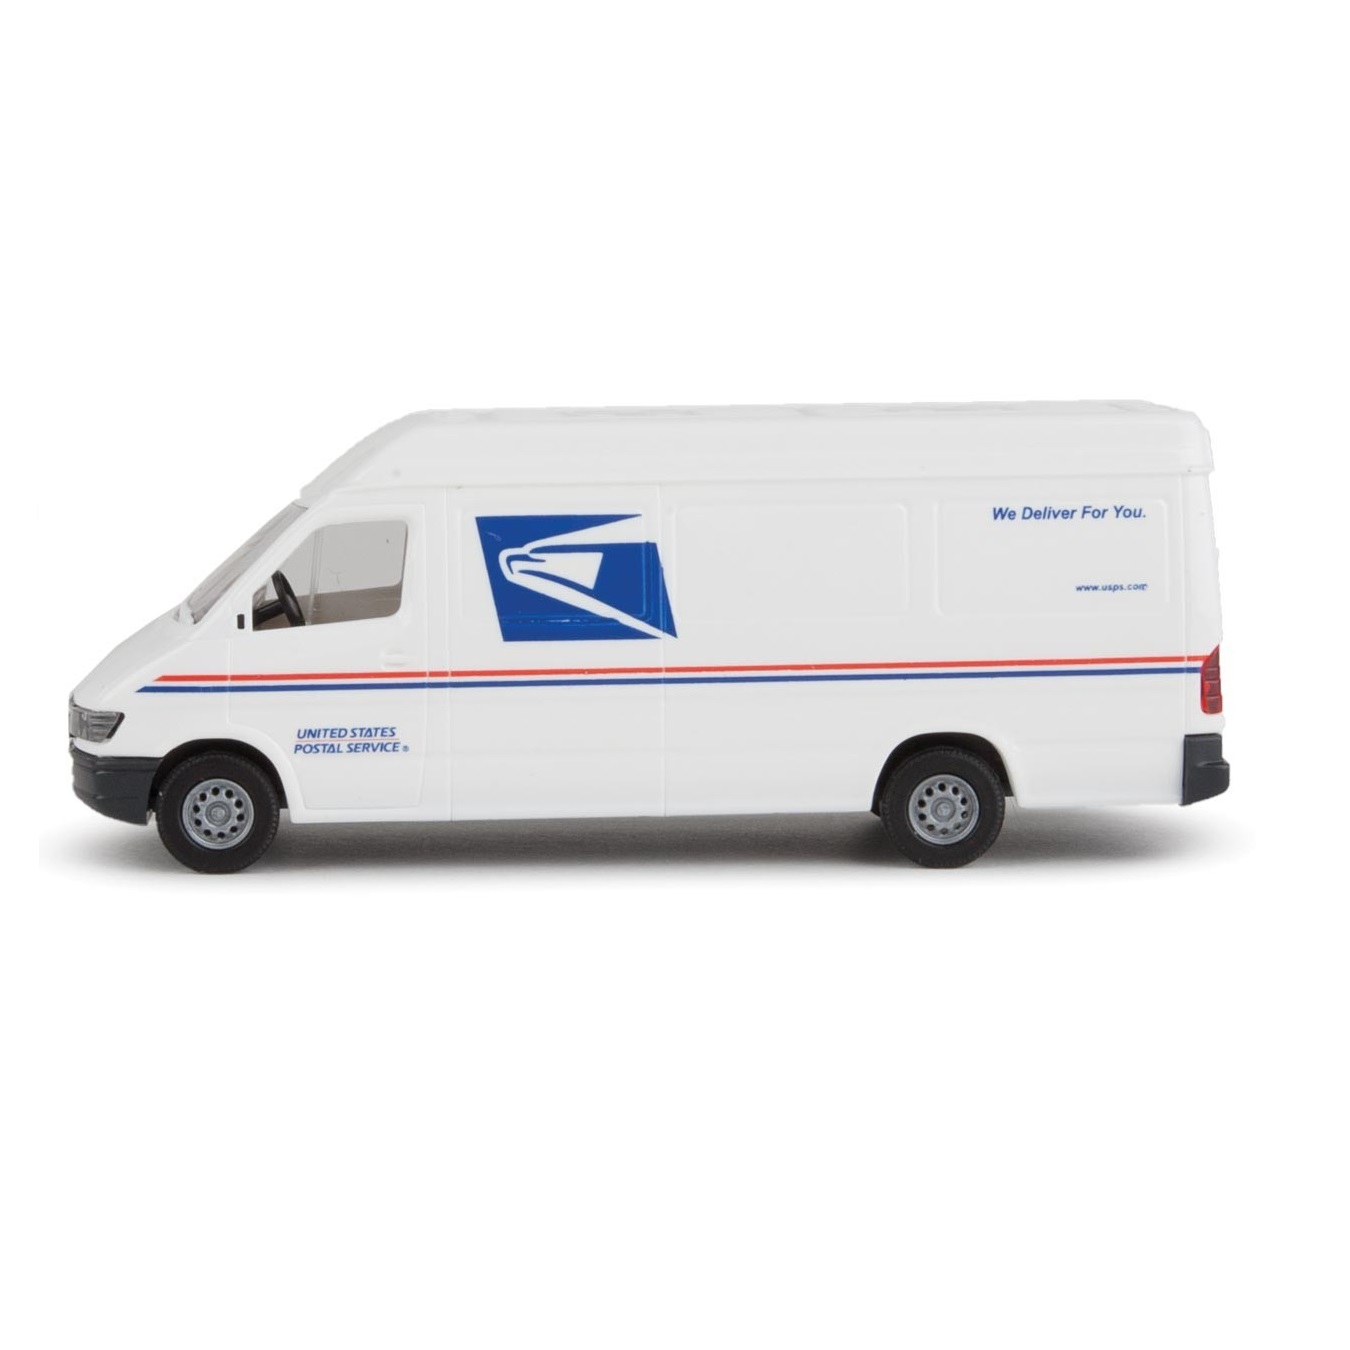 Walthers USPS Delivery Van